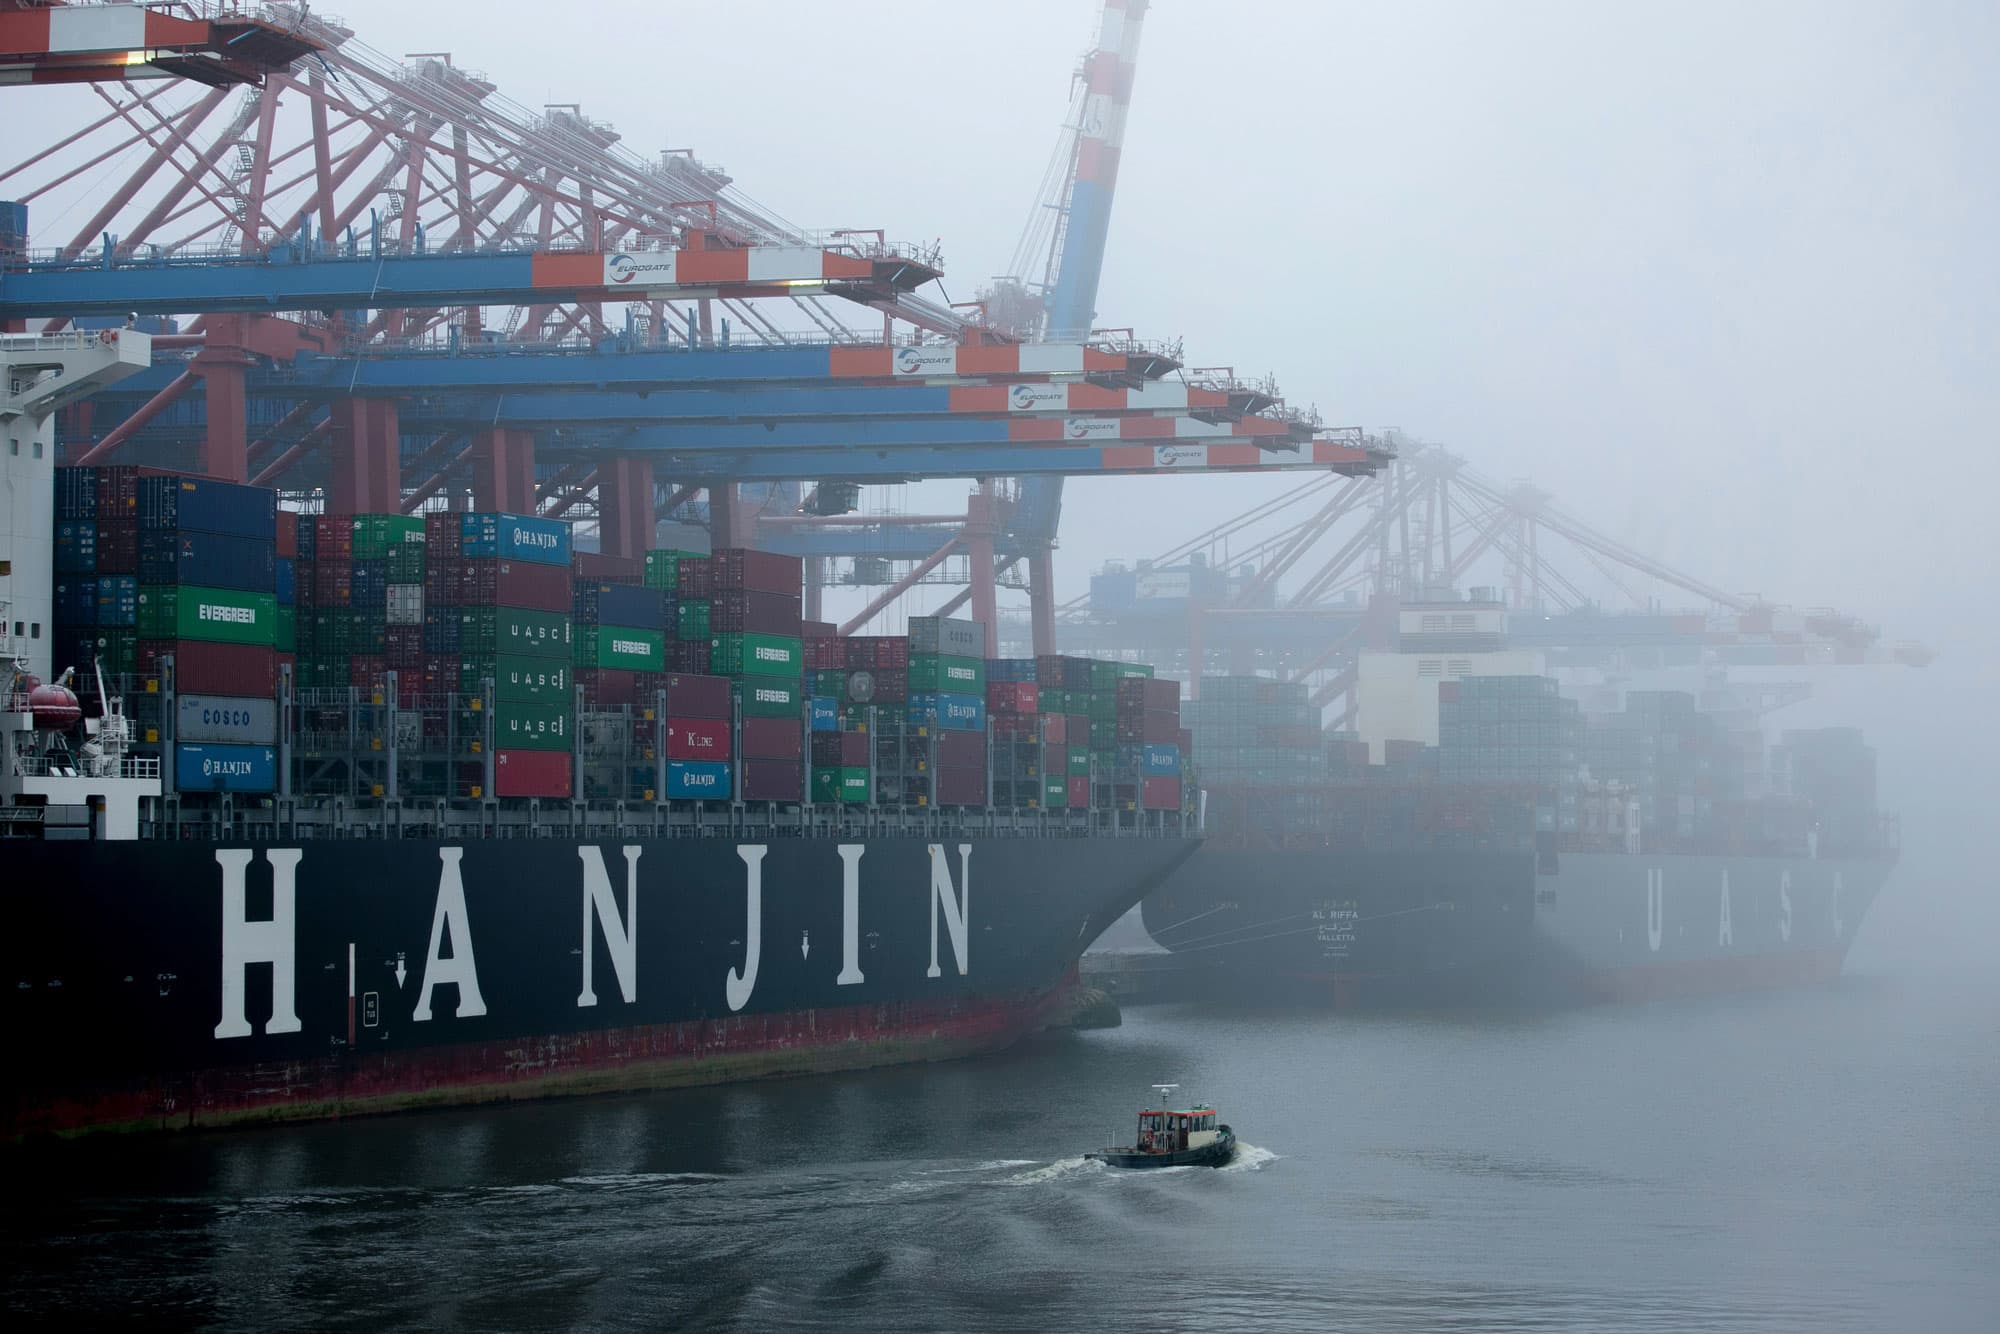 Hanjin Shipping's collapse upsets global trade as vessels